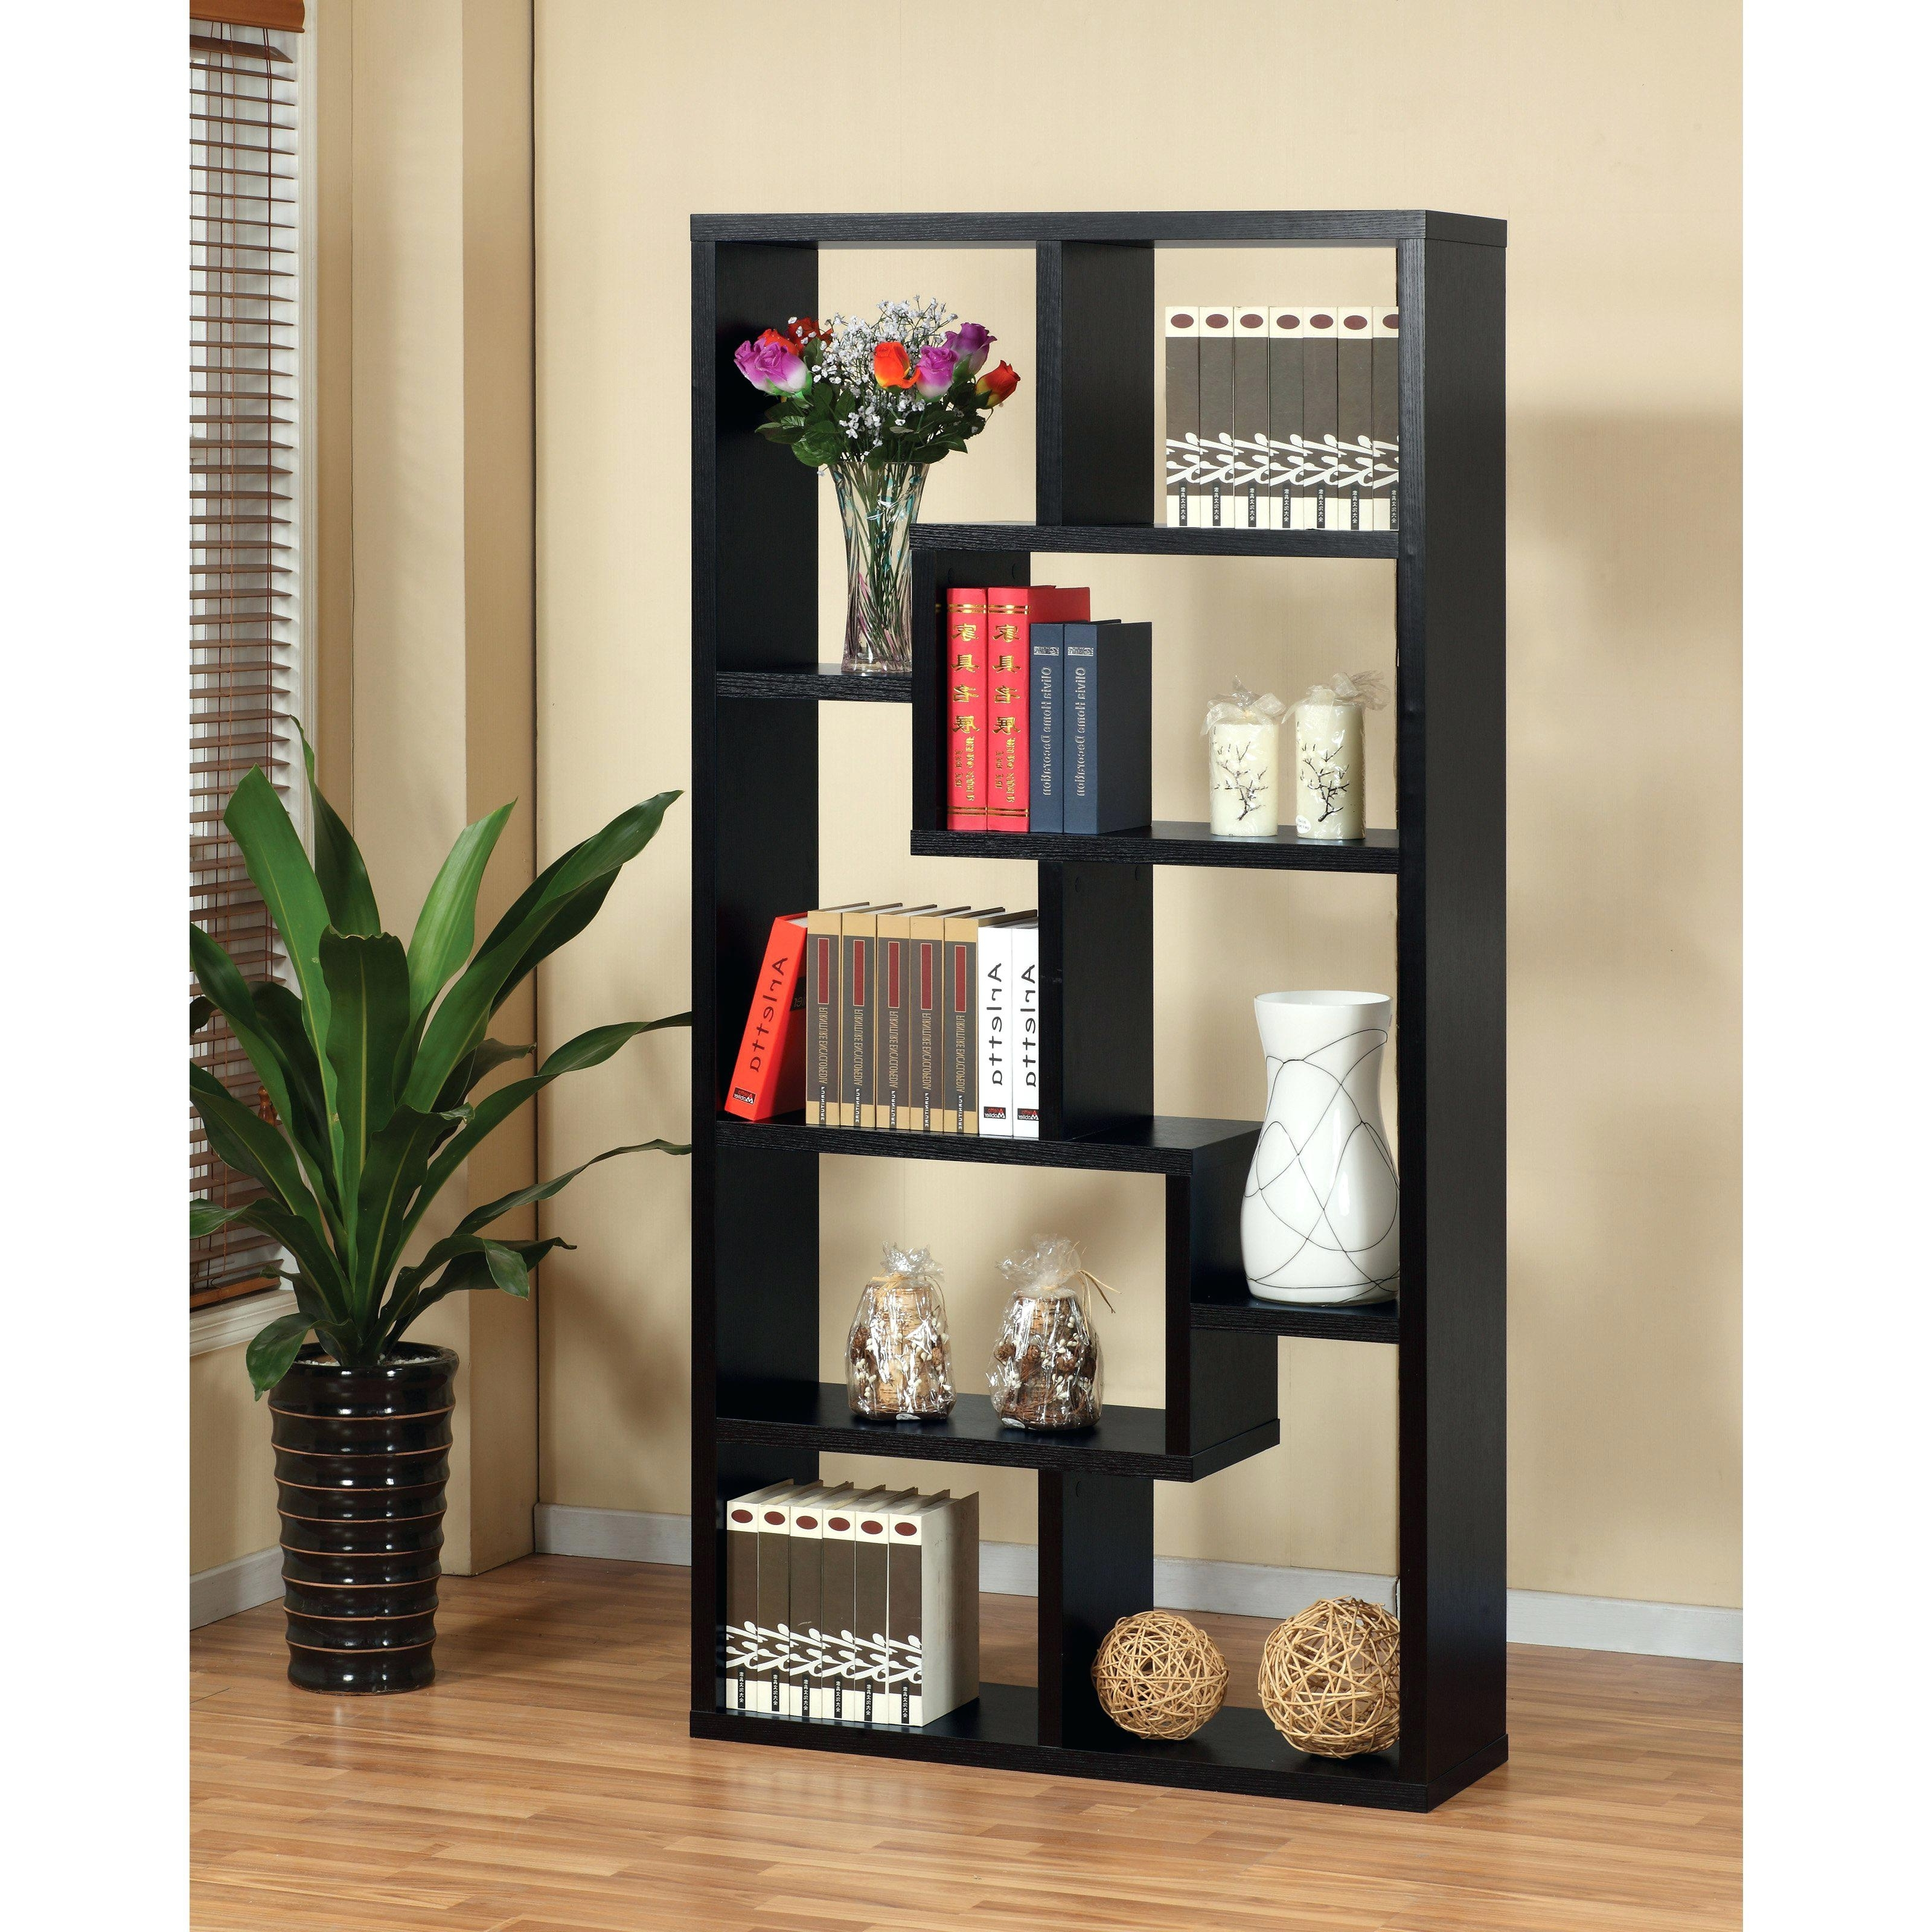 Espresso Target Bookcases Pertaining To Popular Target Bookcases – Edtnscandinavia (View 8 of 15)